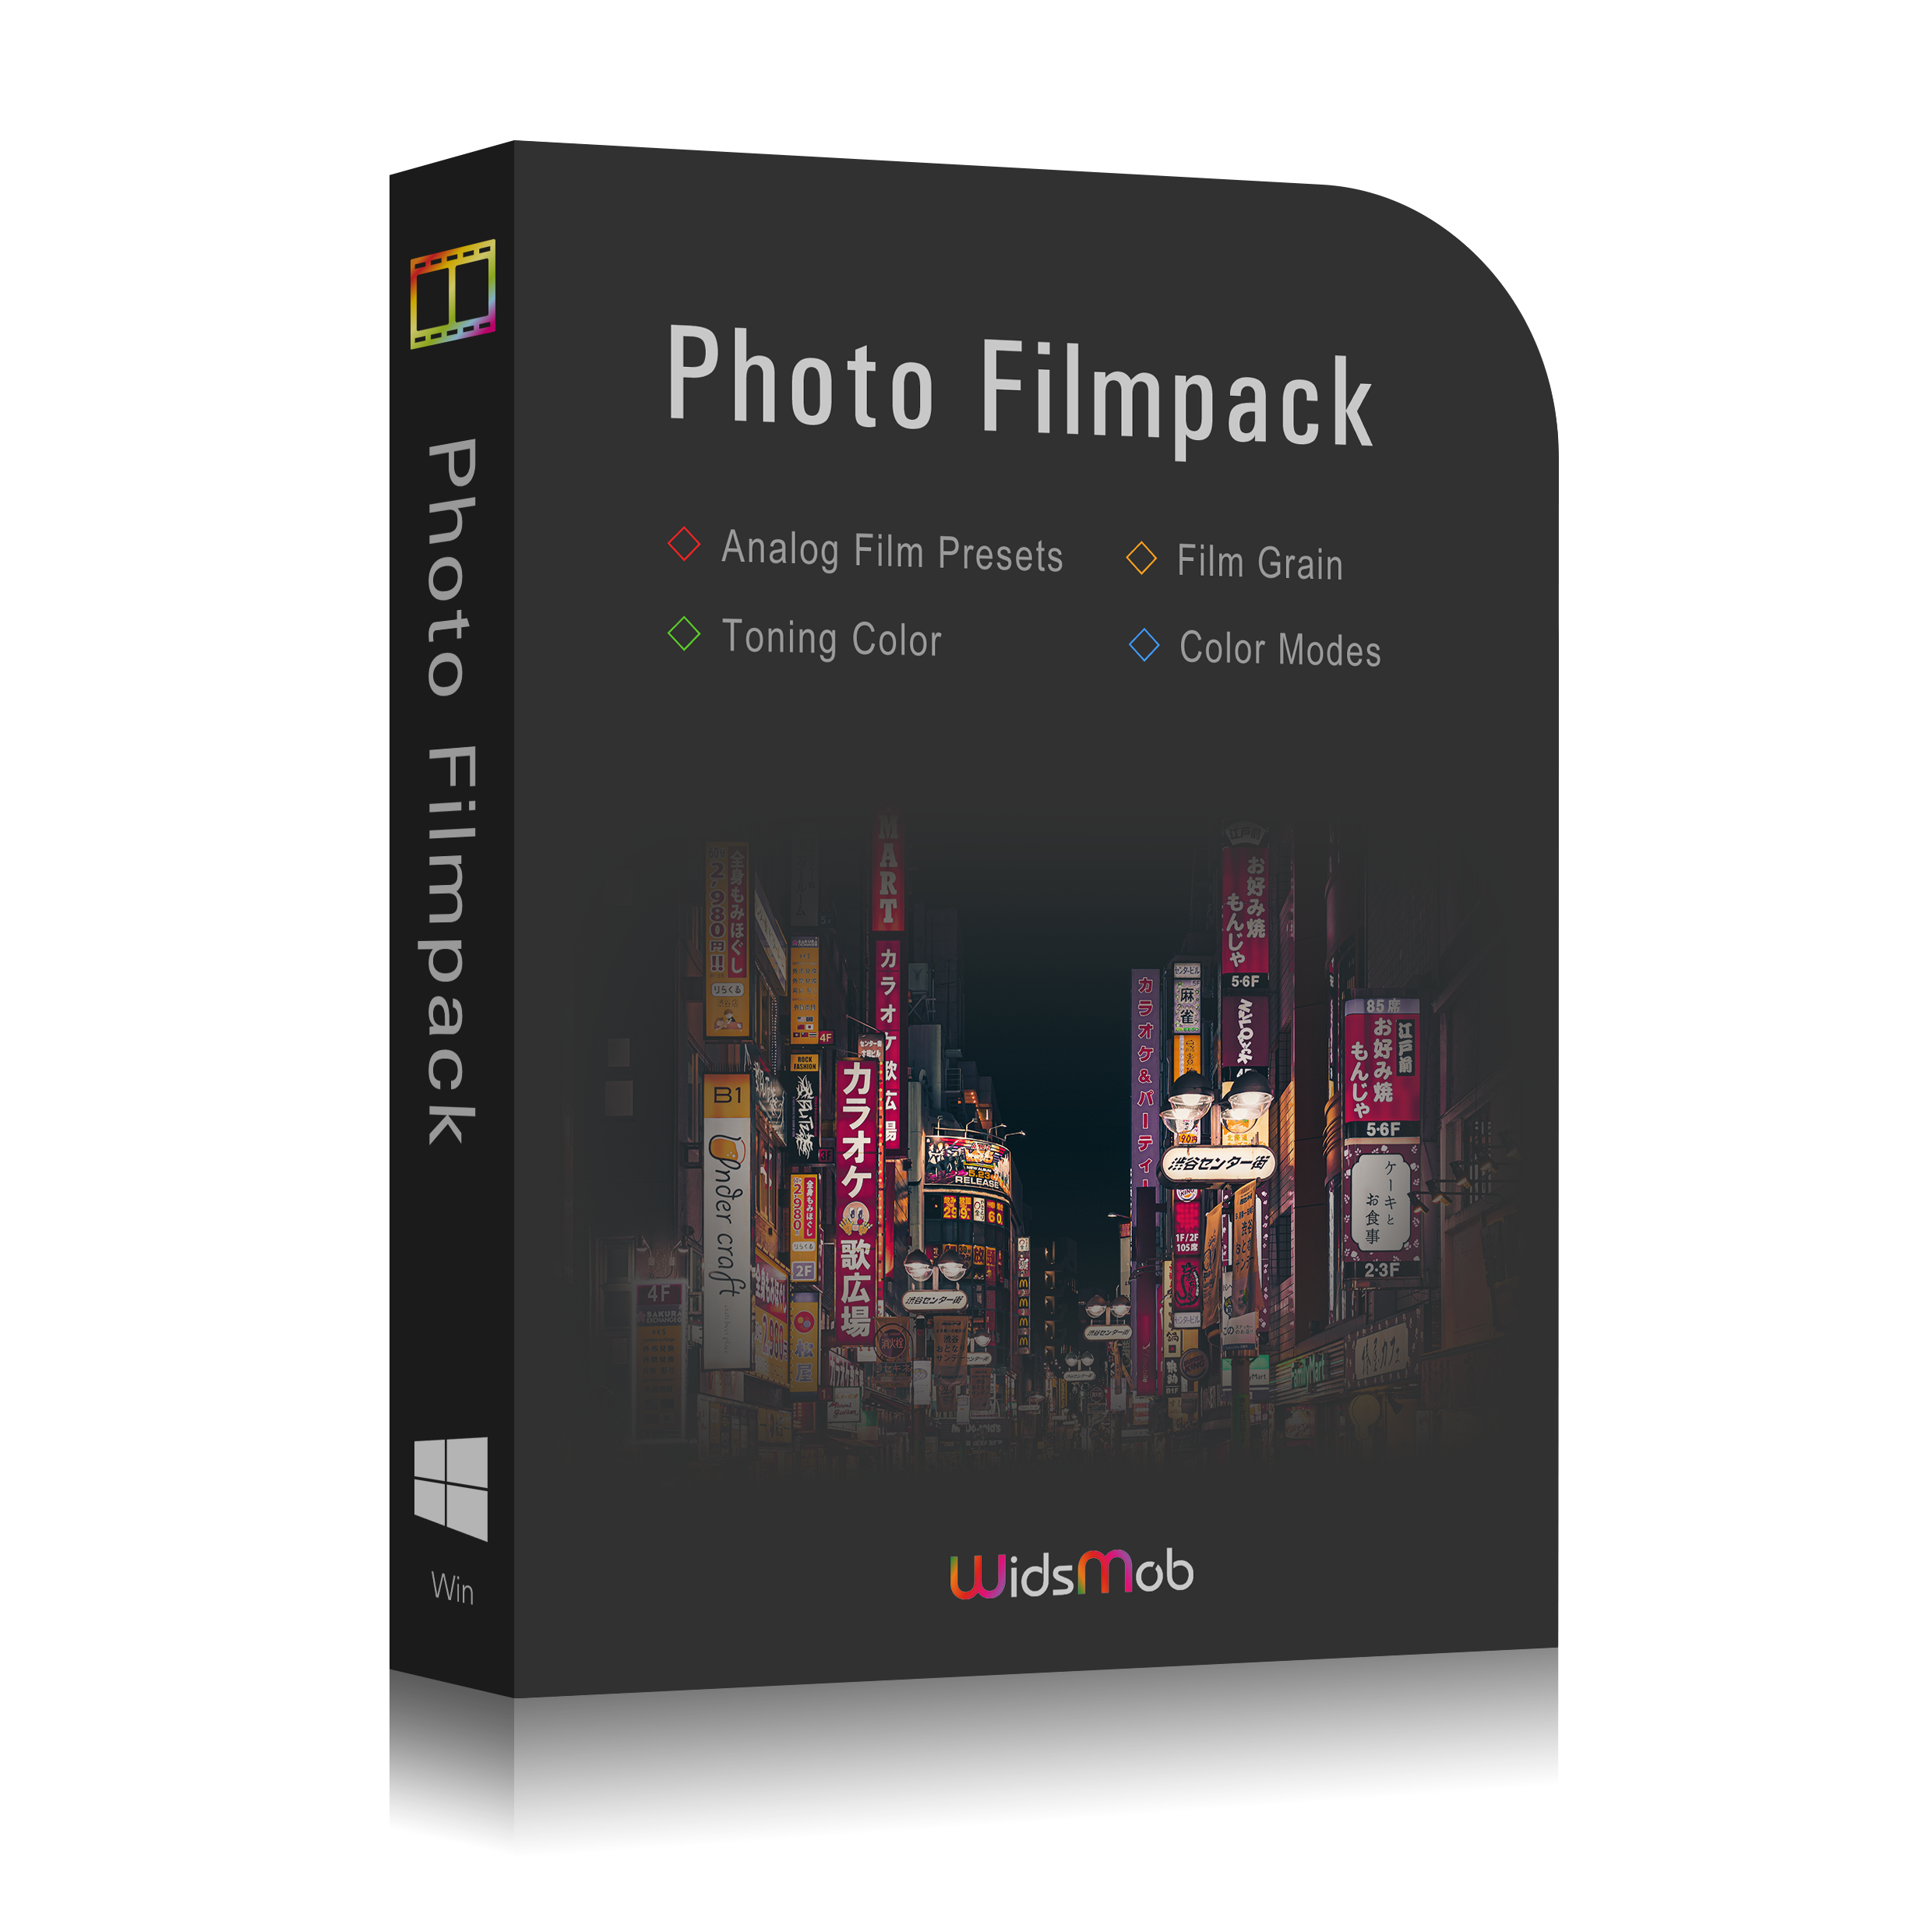 filmpack box win new